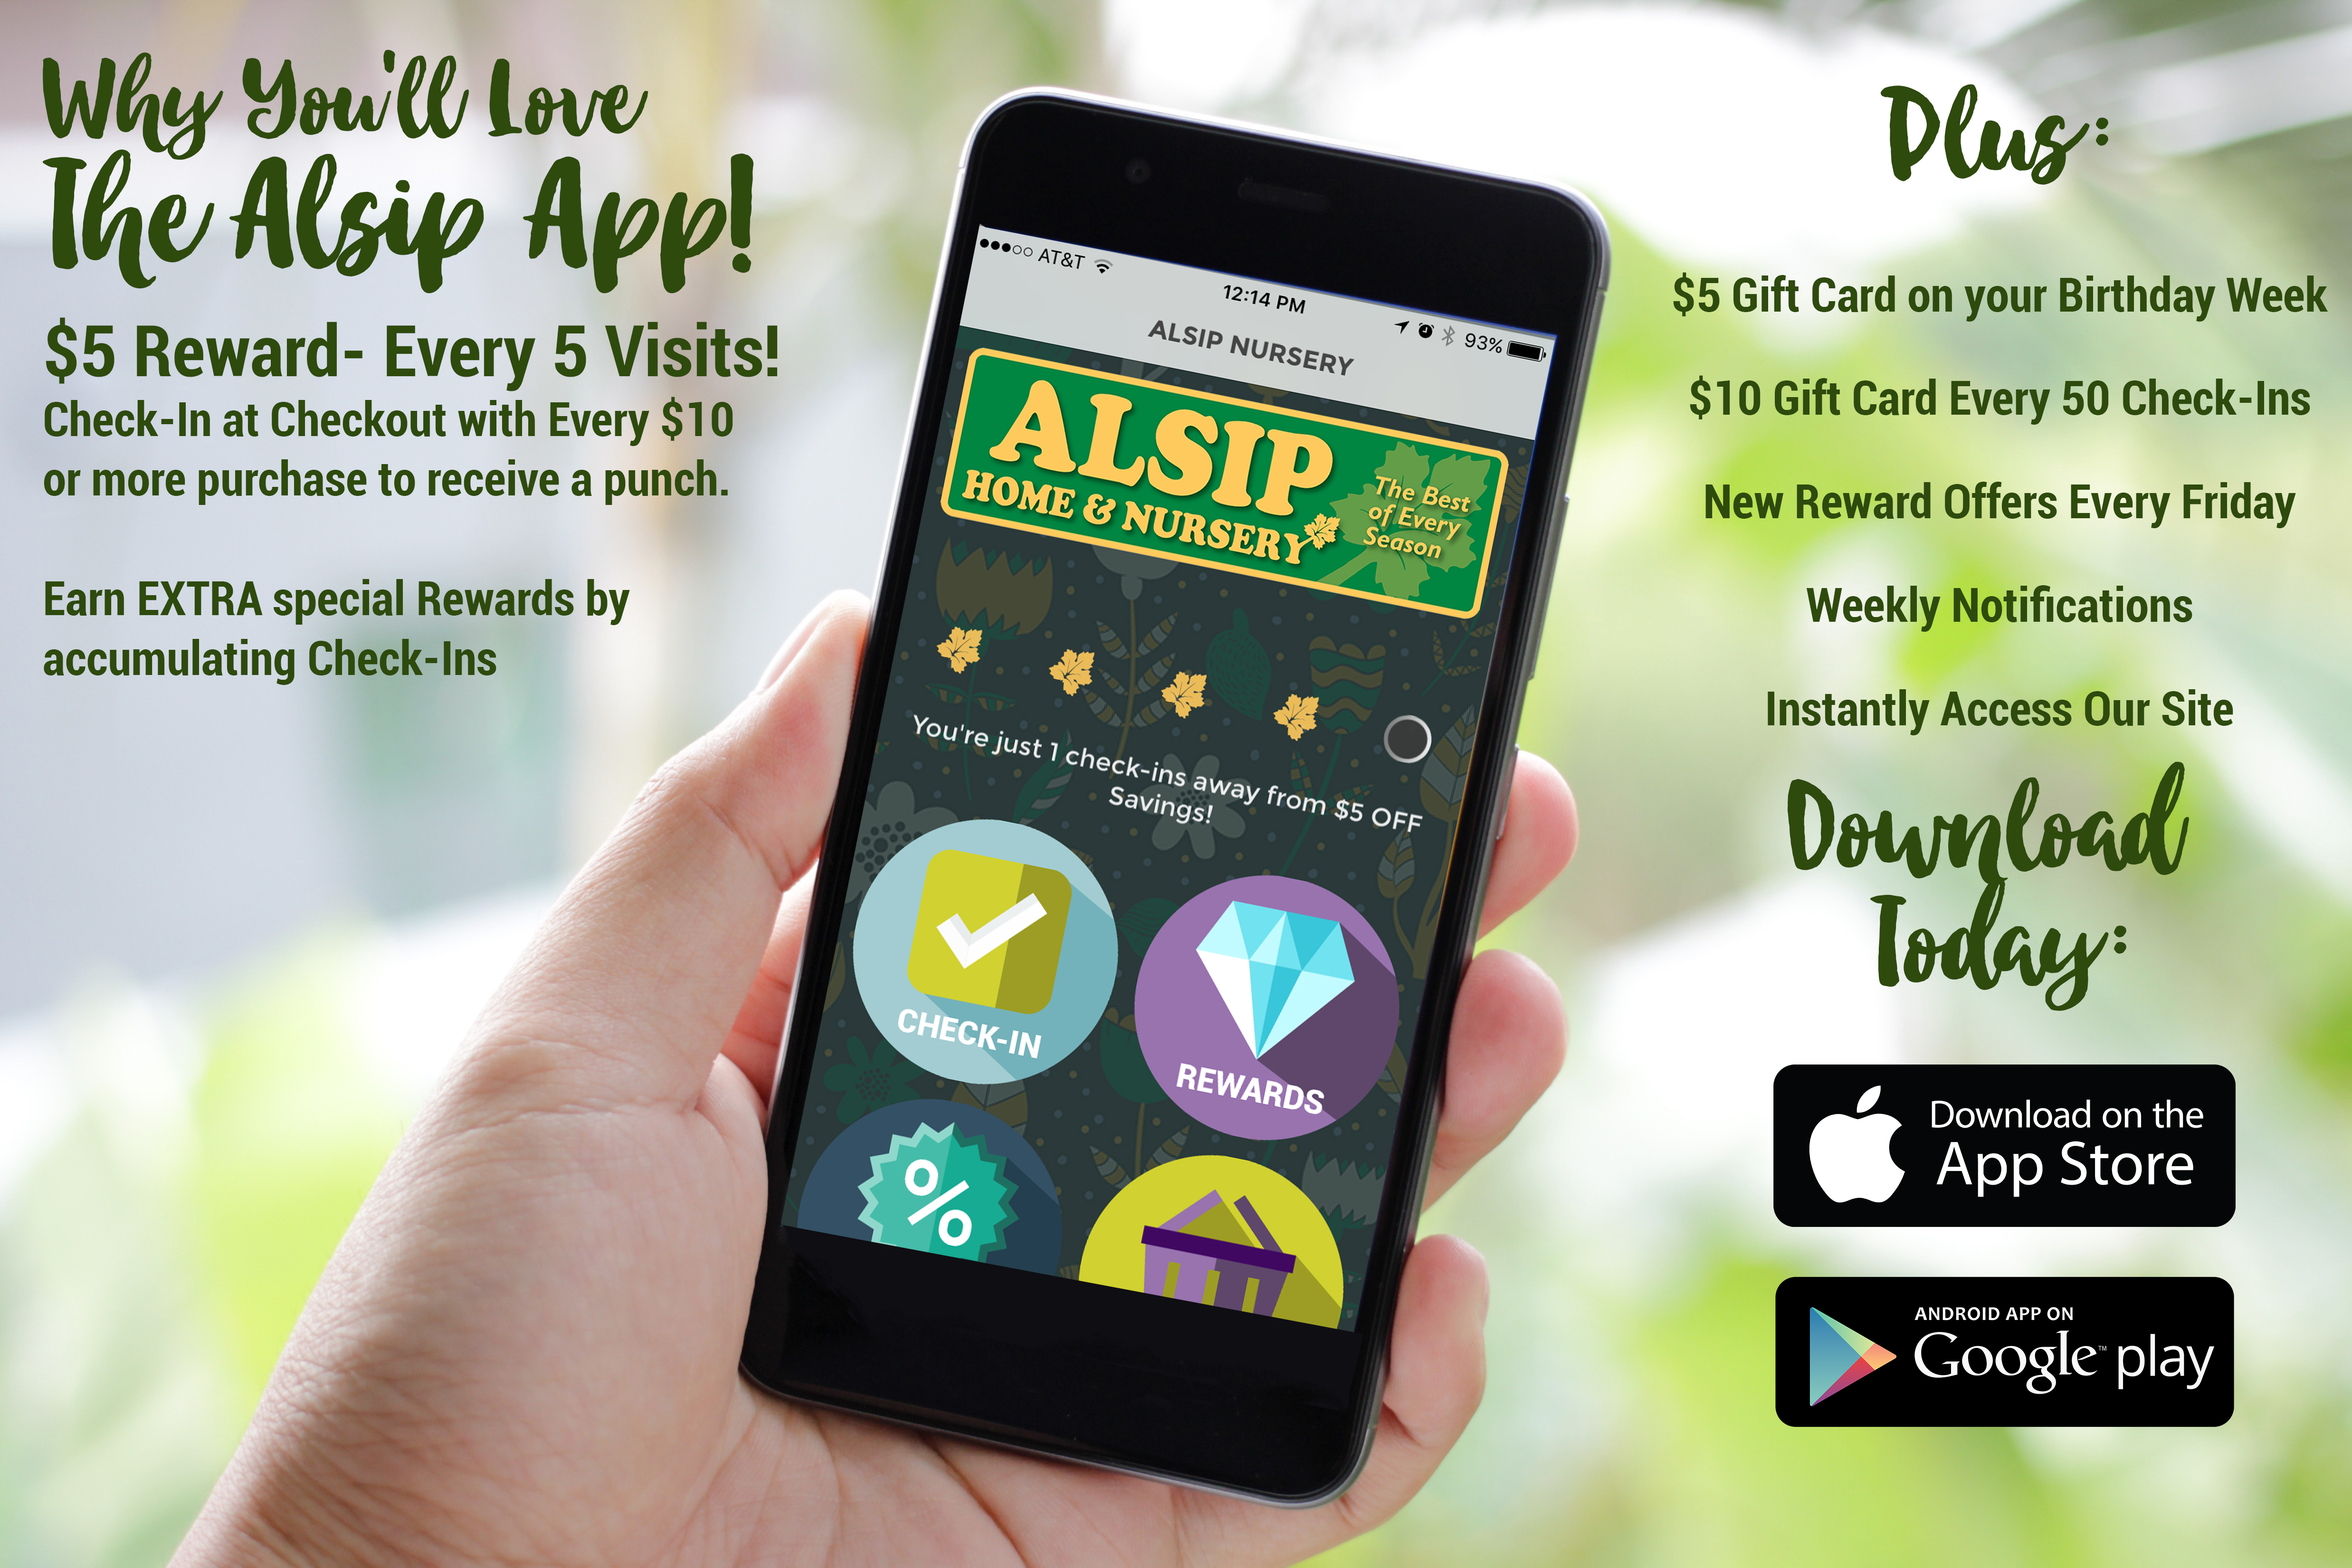 Why you'll love the Alsip Nursery Reward App!